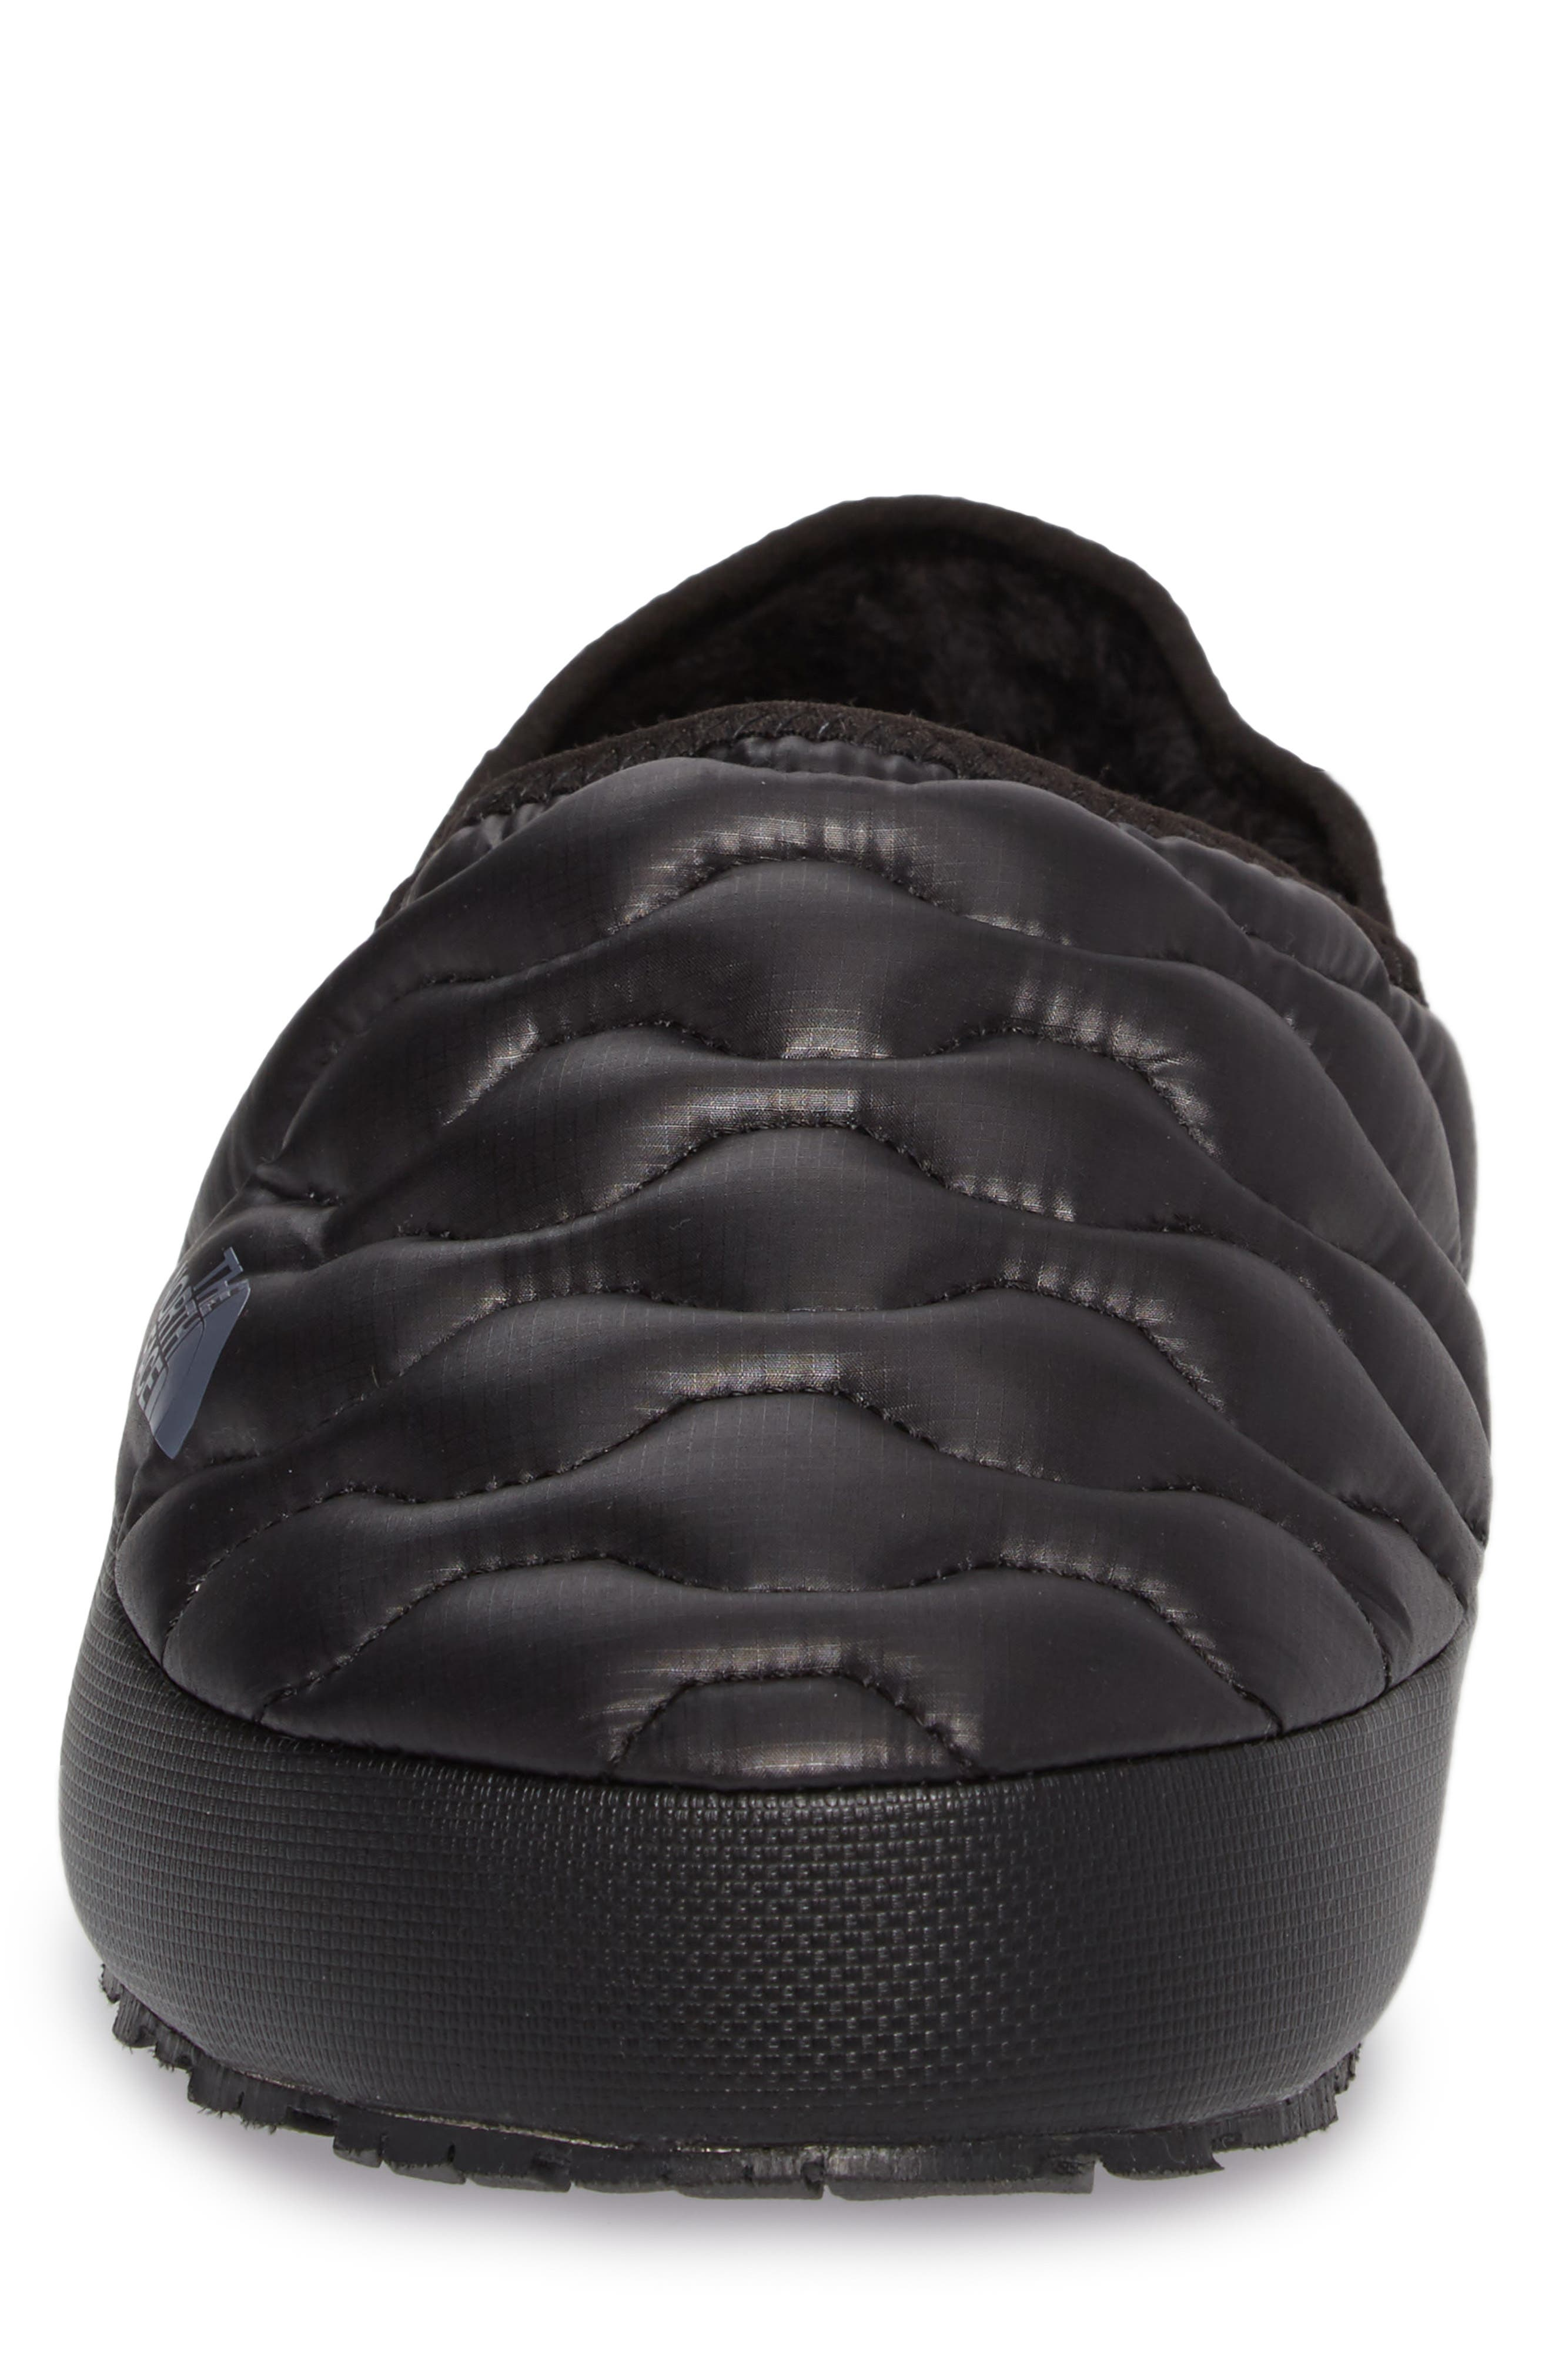 ThermoBall<sup>™</sup> Water-Resistant Traction slipper,                             Alternate thumbnail 4, color,                             SHINY BLACK/ DARK GREY